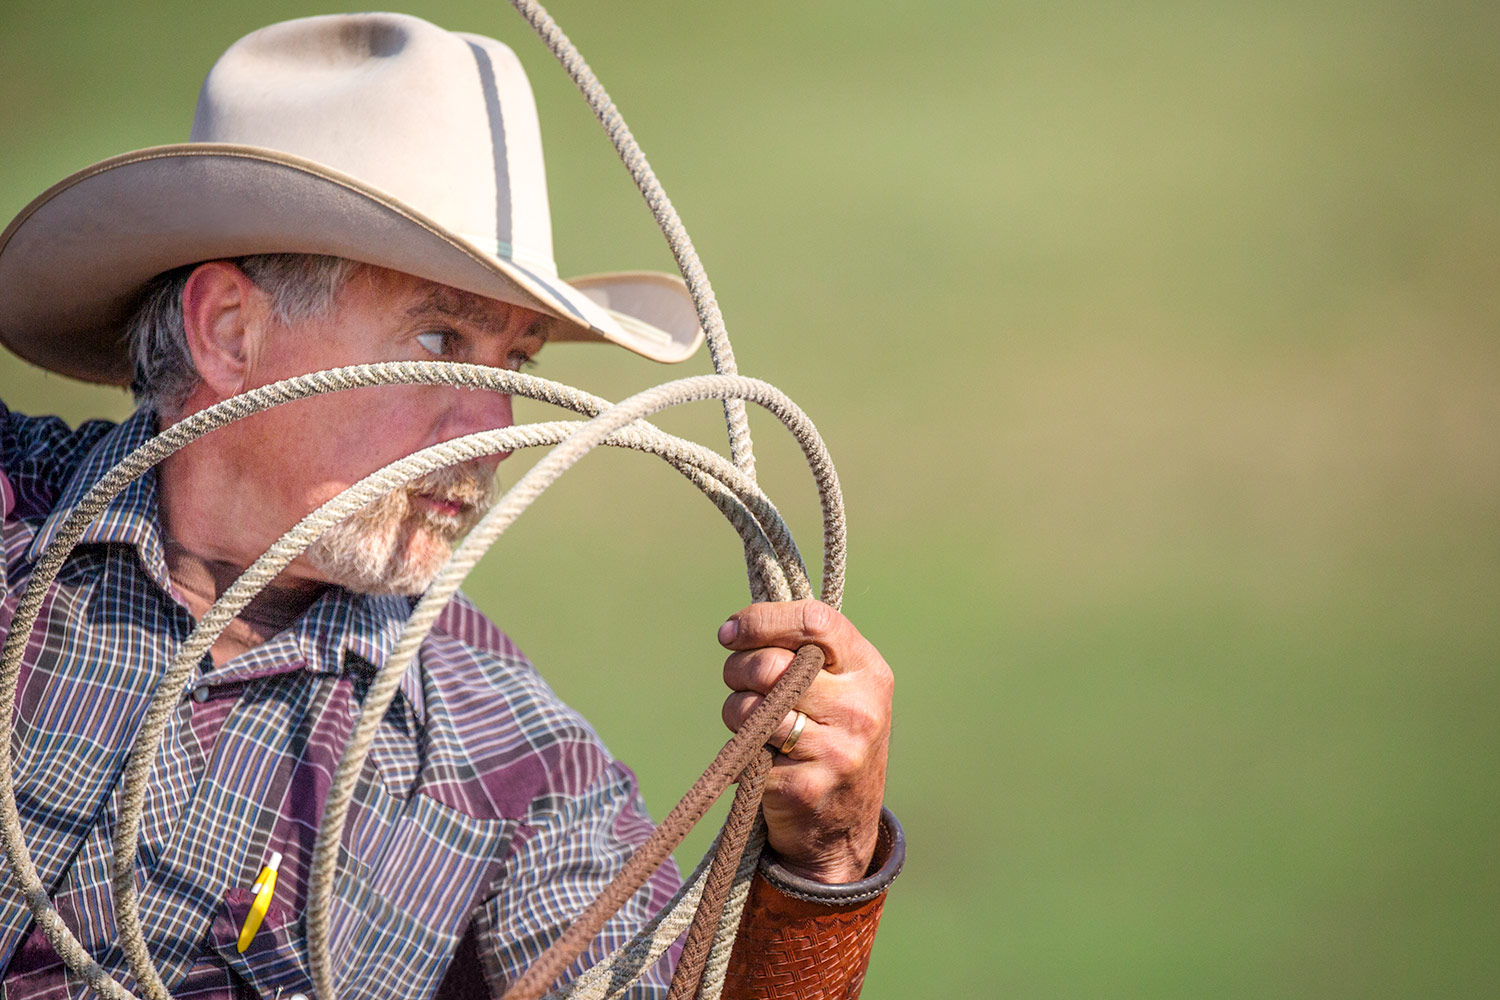 The Rope Man